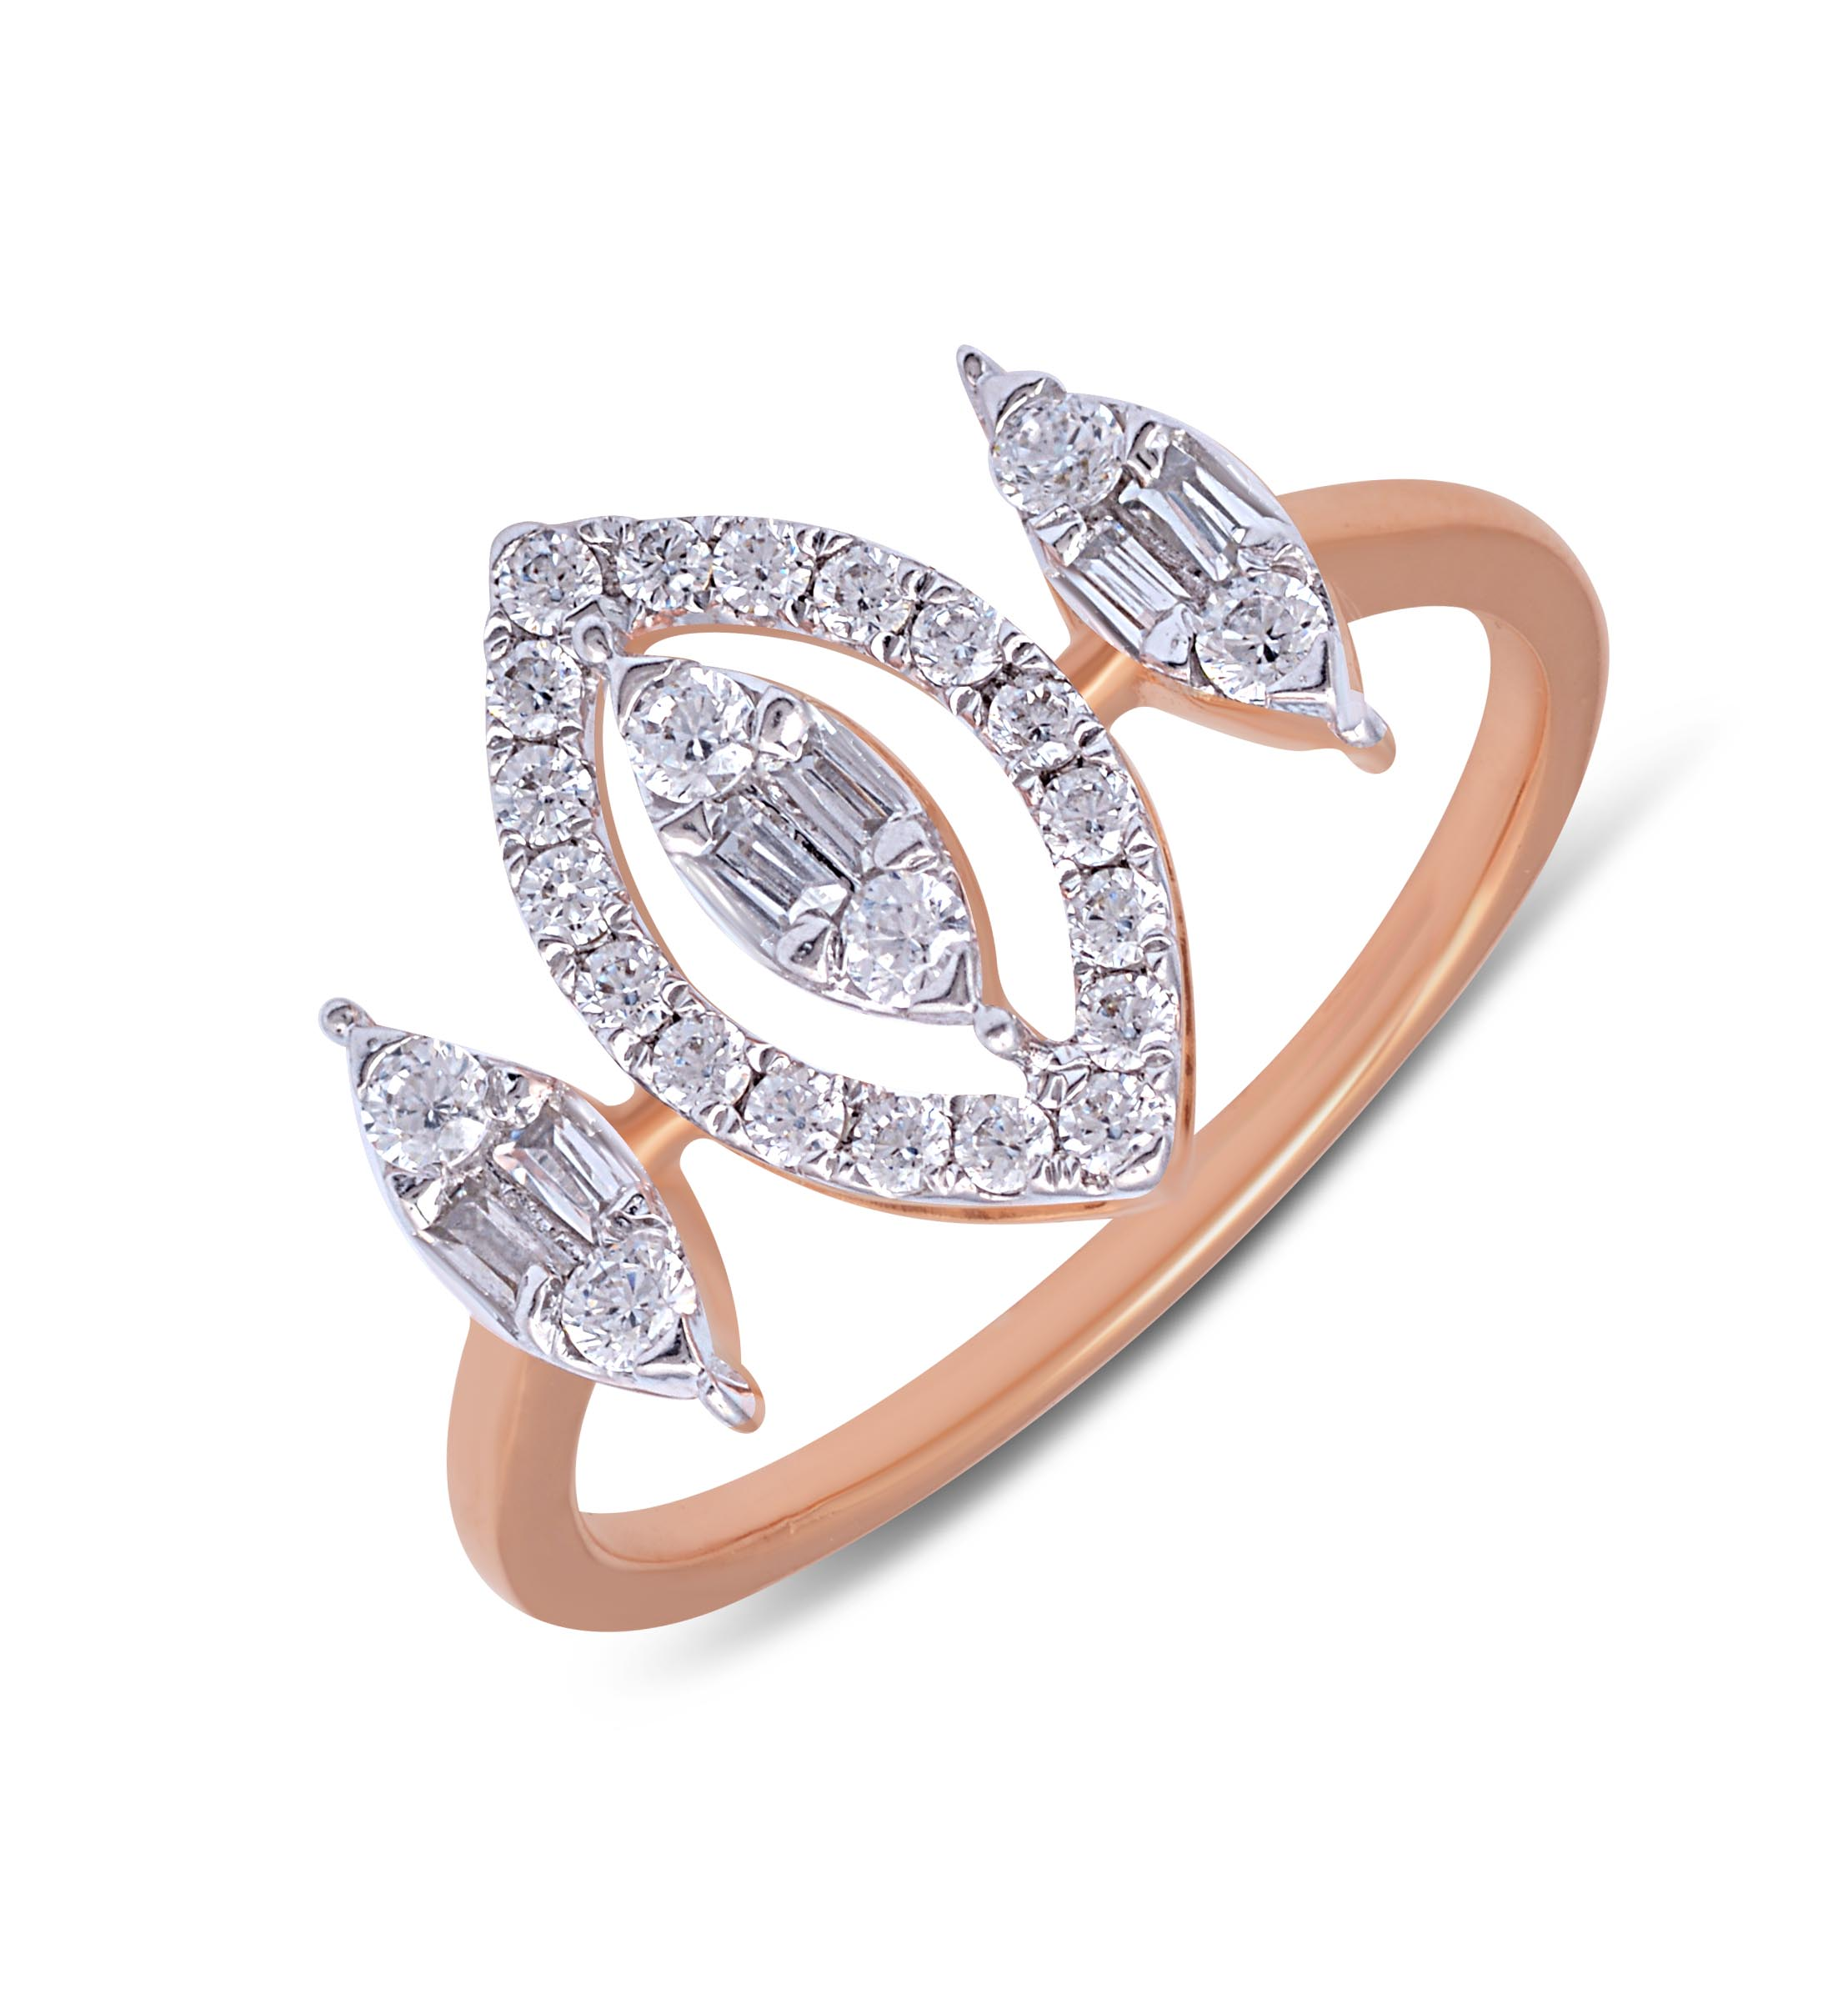 Glamor Diamond Finger Ring